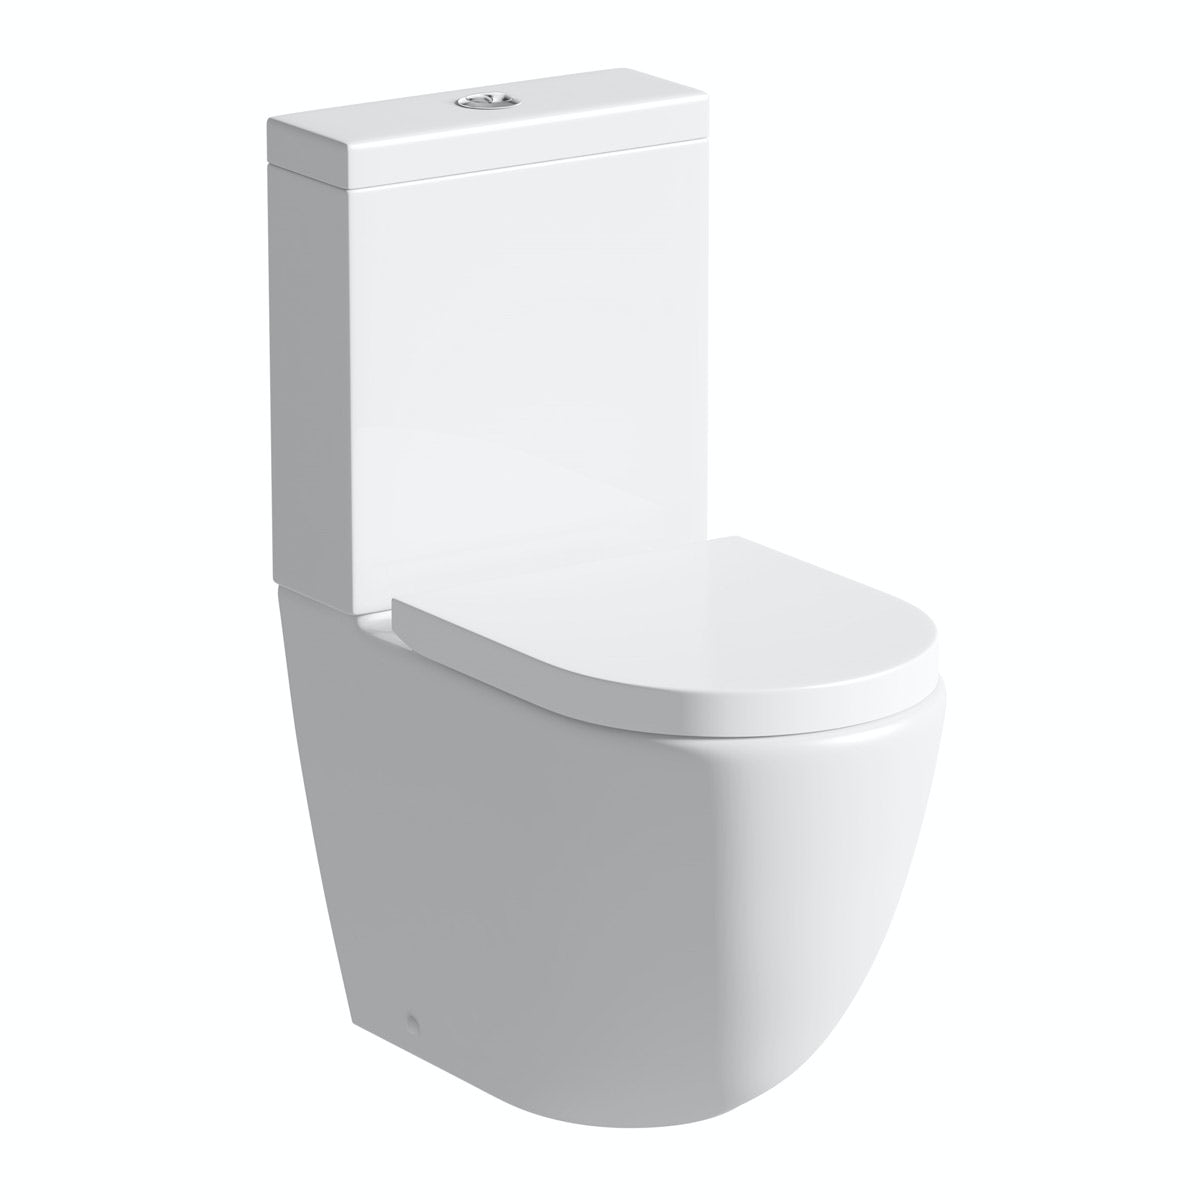 Mode Harrison rimless close coupled toilet with soft close seat